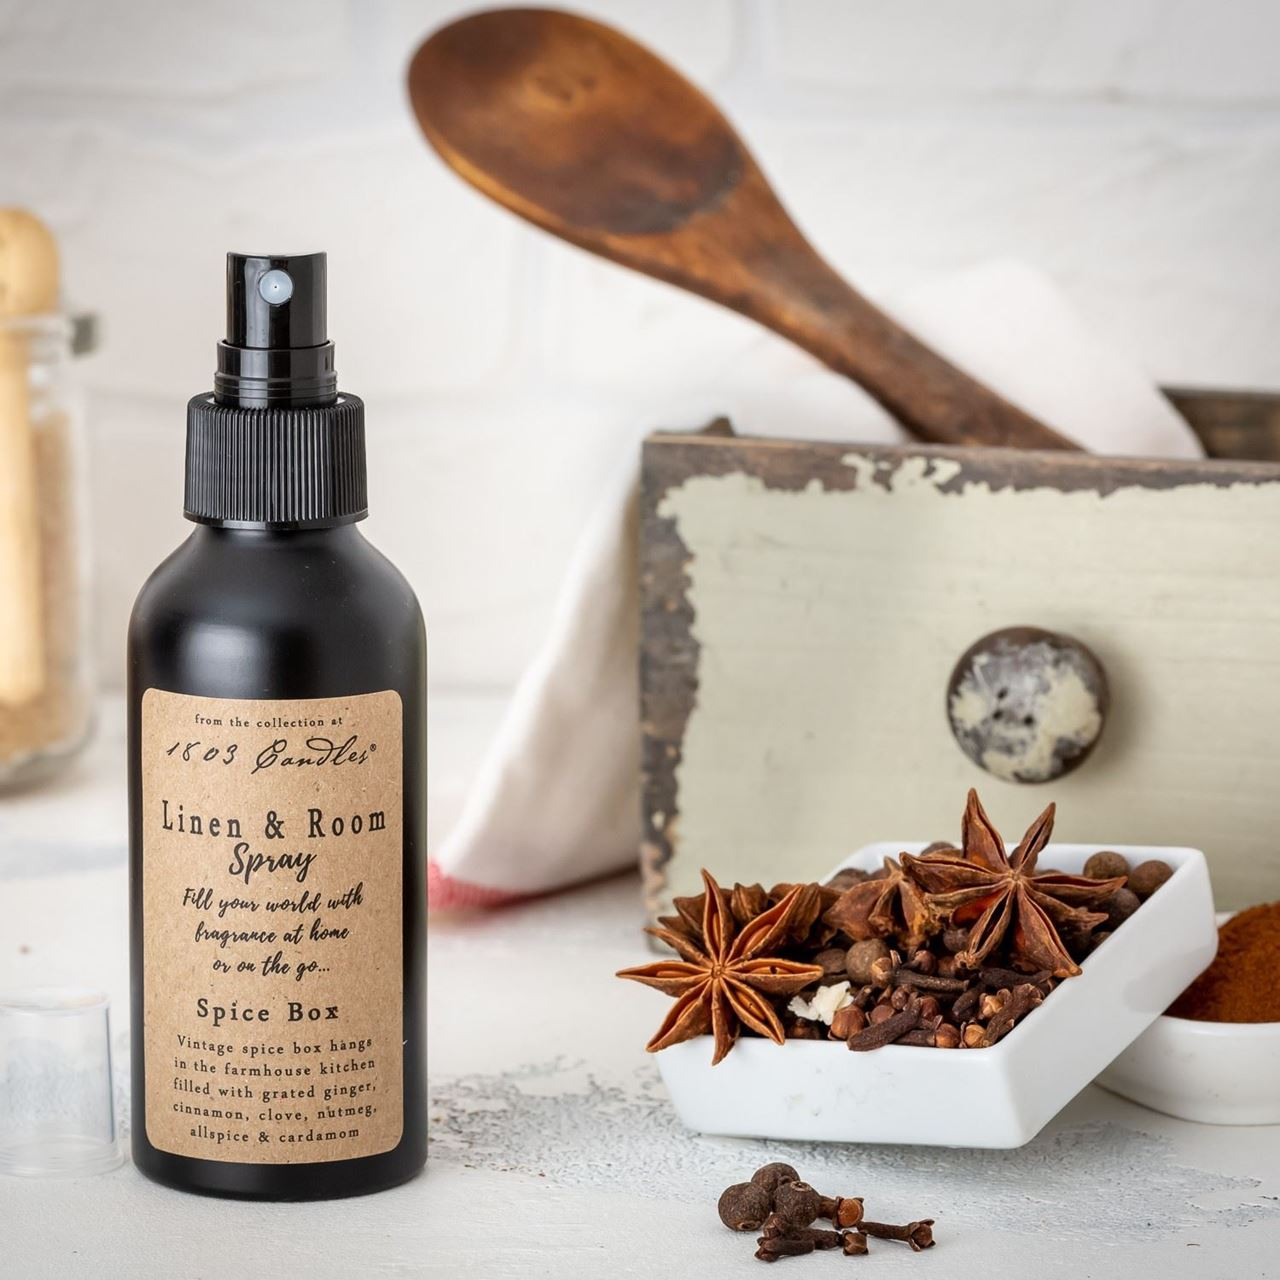 Spice Box Linen & Room Spray by 1803 Candles